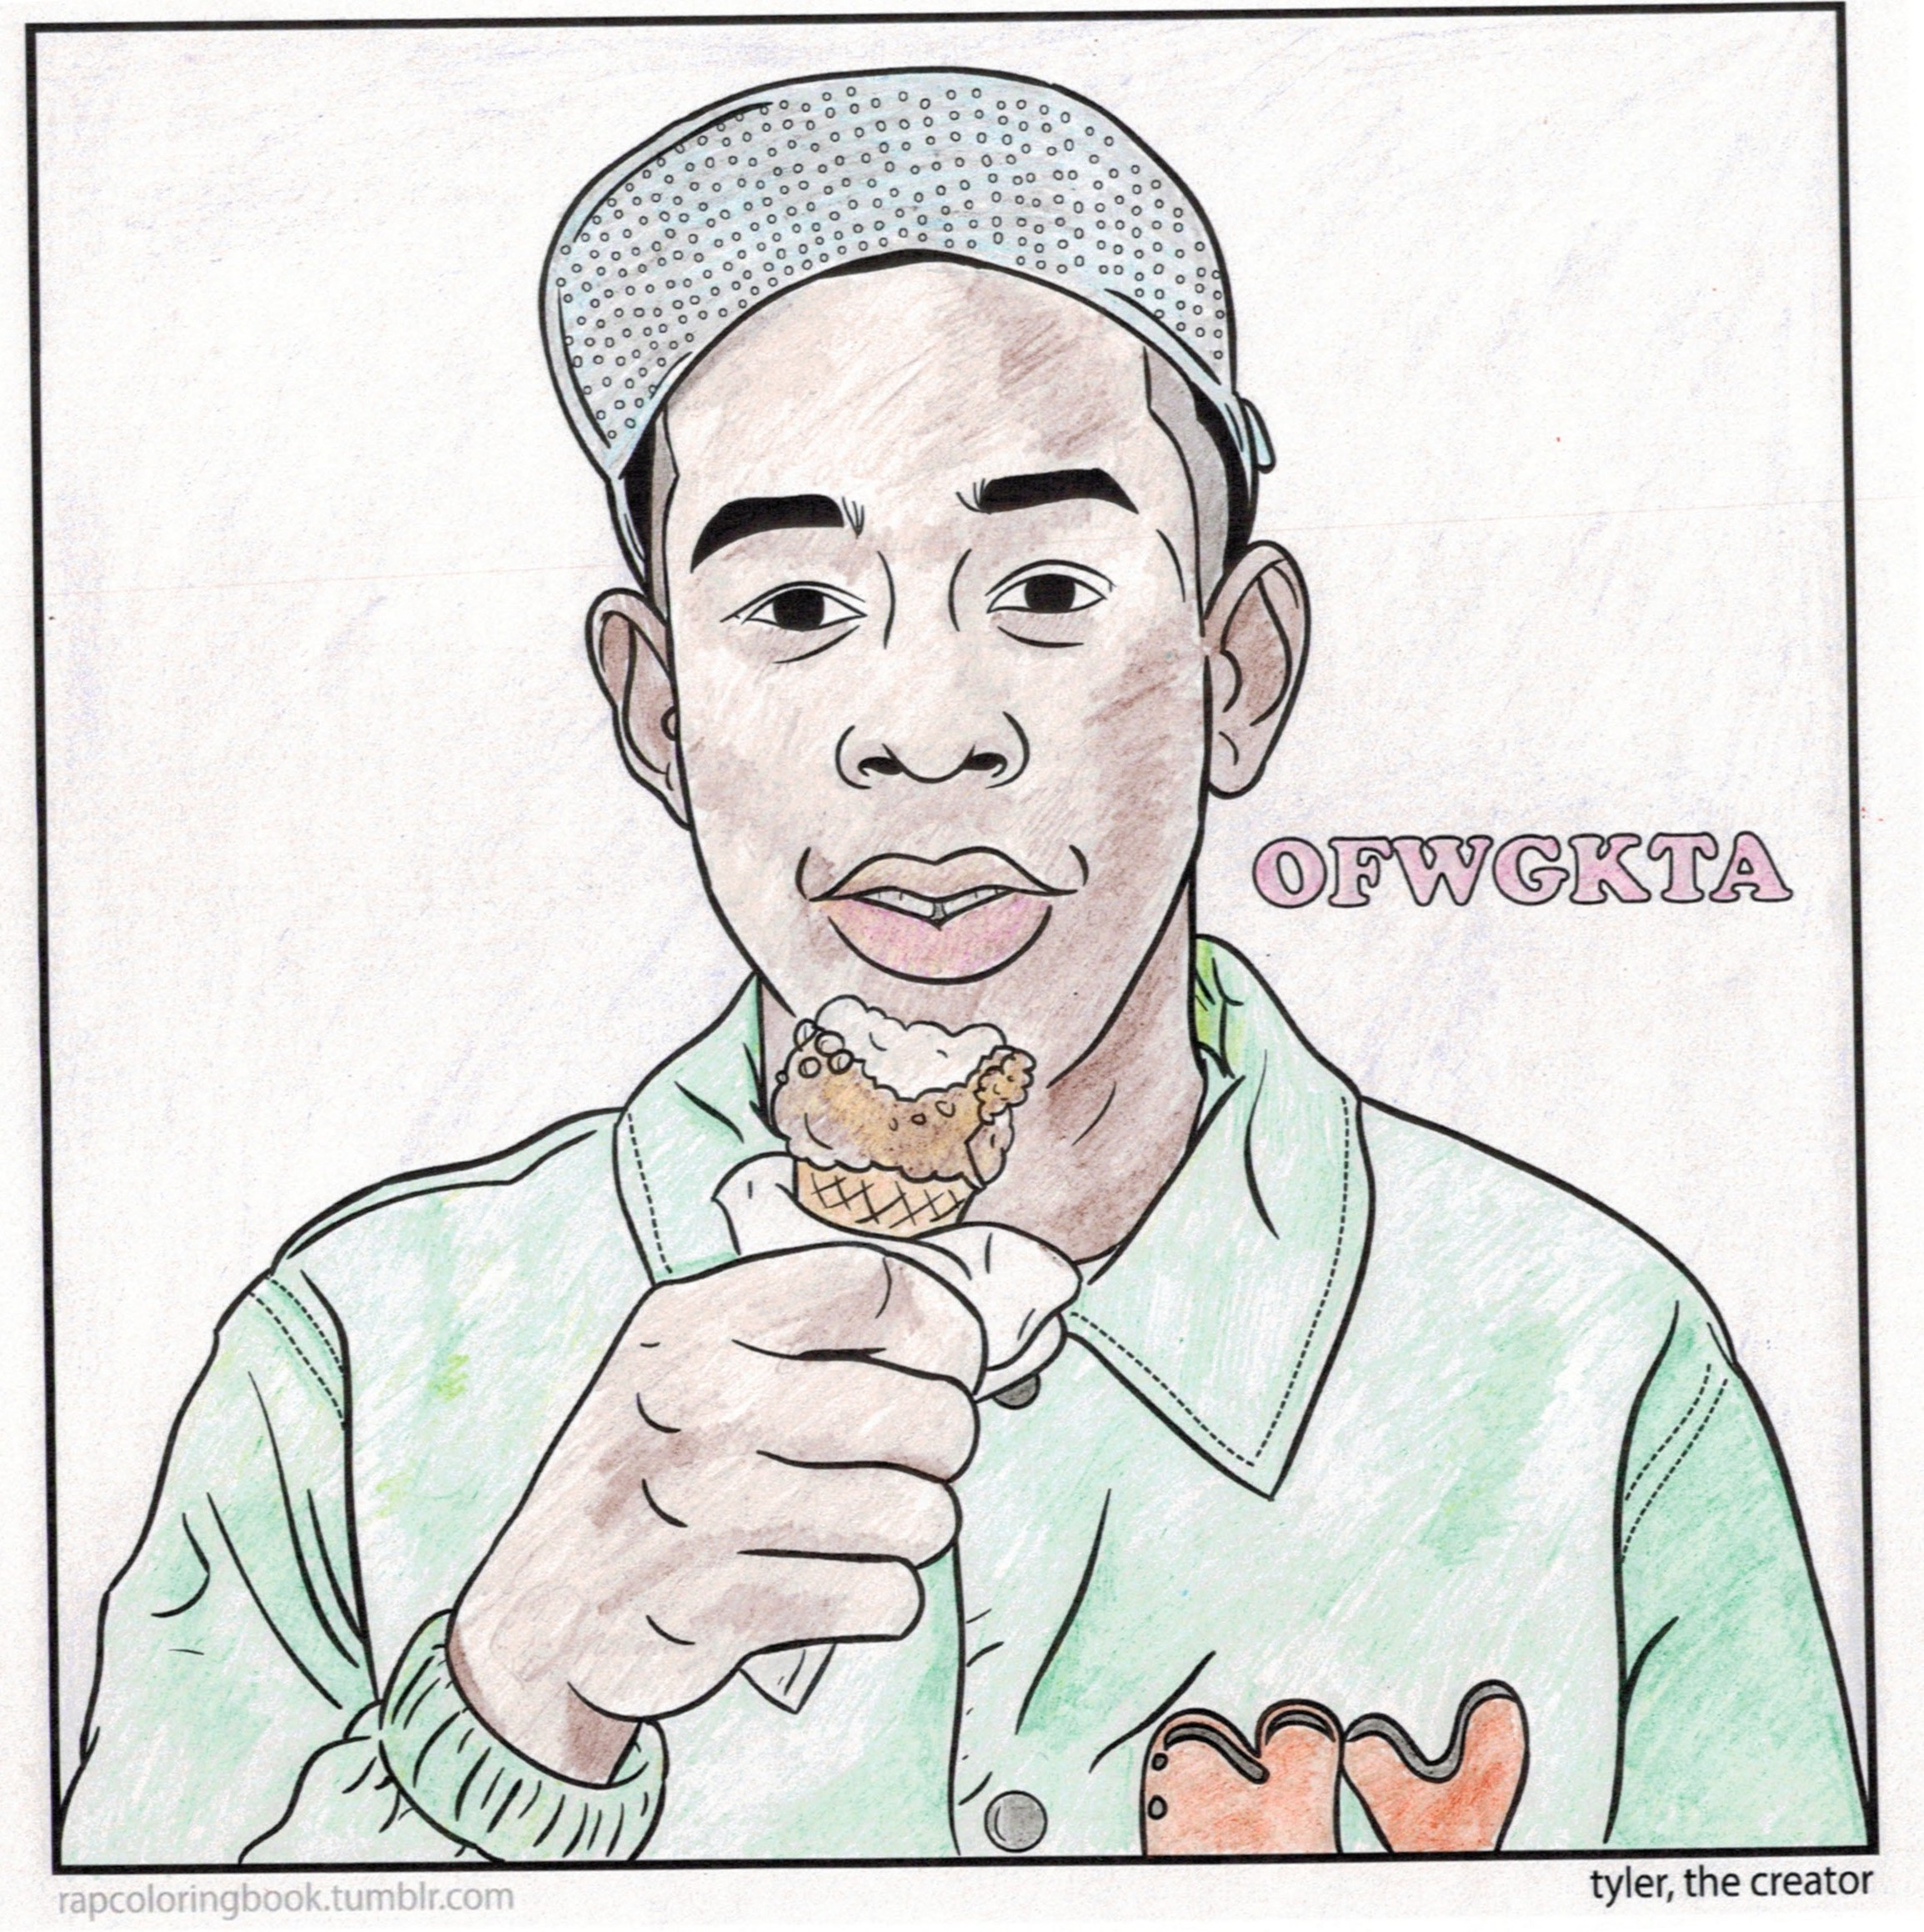 notice how ive opted for a tidy coloring job here using pencils check out that shading take that odd future fans